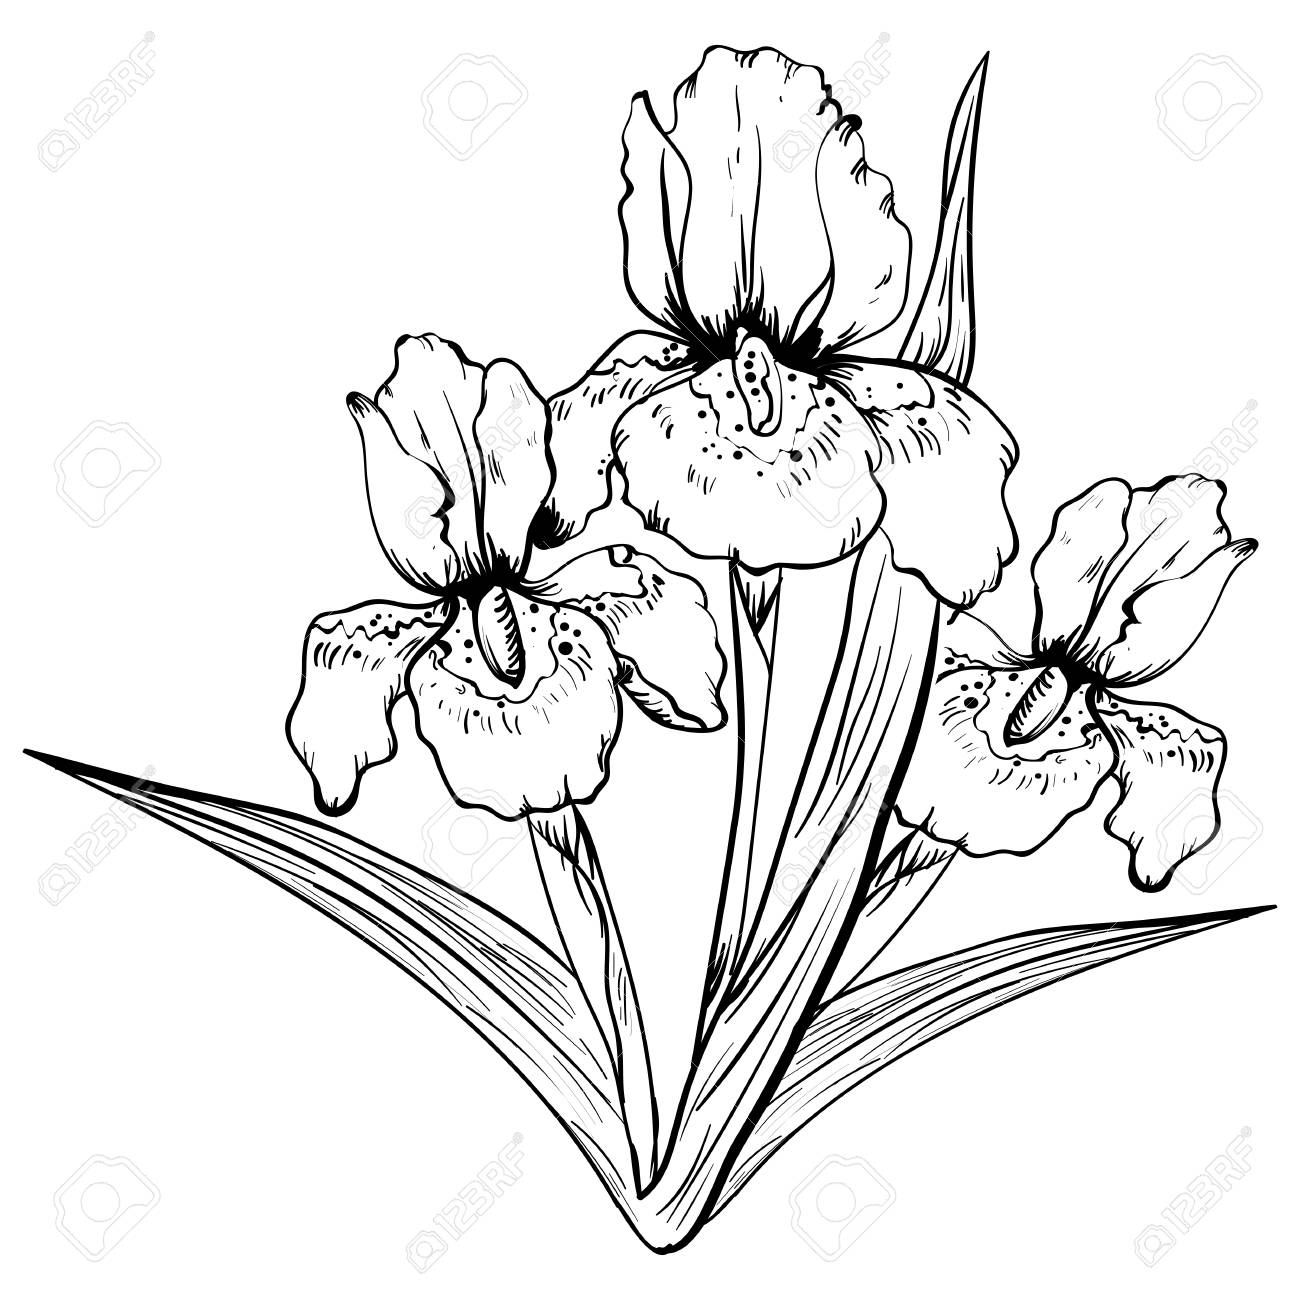 Hand Drawn Iris Flower Sketch Vector Illustration Sketch Isolated Royalty Free Cliparts Vectors And Stock Illustration Image 91370788